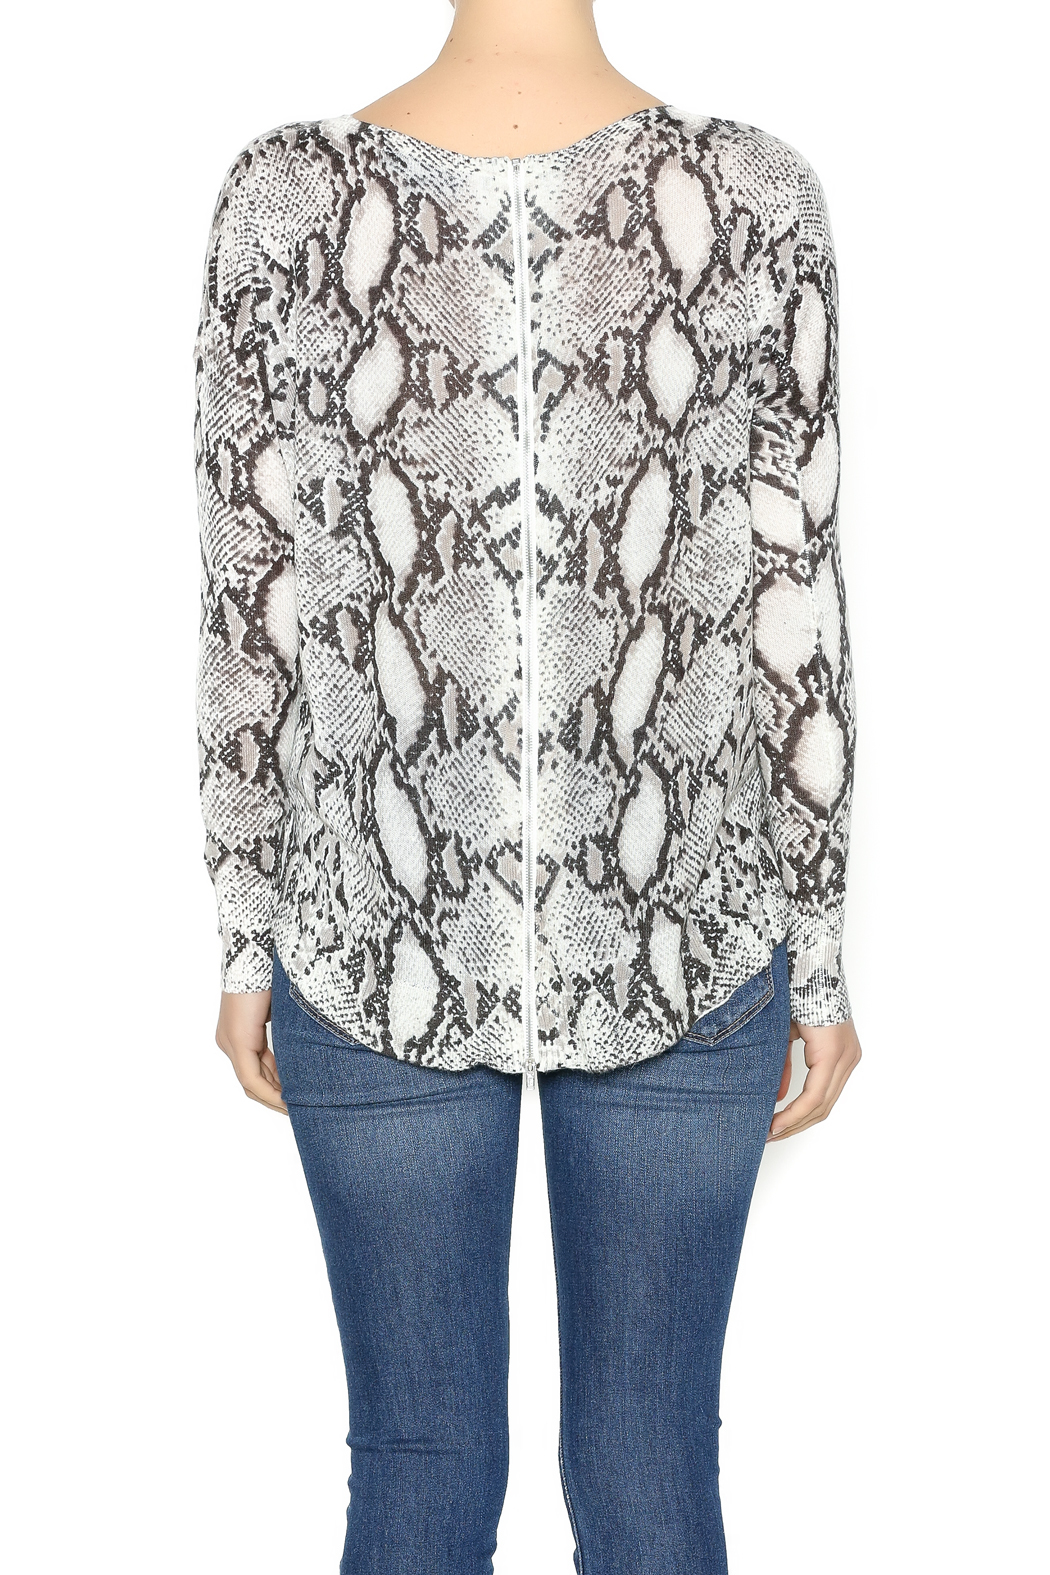 Olivaceous Snake Print Sweater - Back Cropped Image